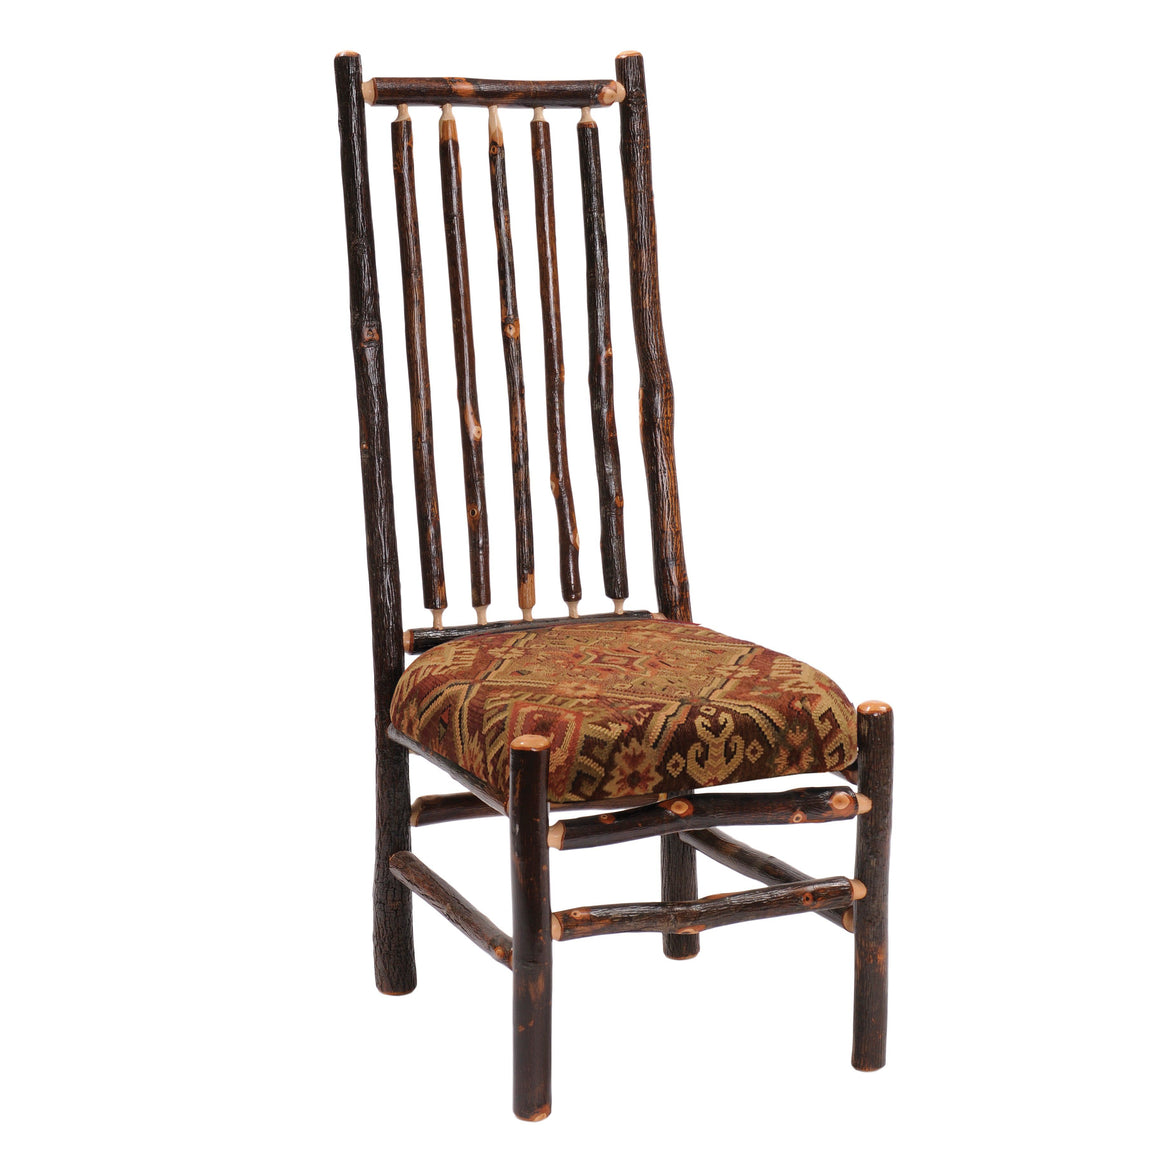 Natural Hickory Log High-back Spoke Side Chair - Upholstered Seat - Standard Finish Chair Fireside Lodge Customer's Own Material